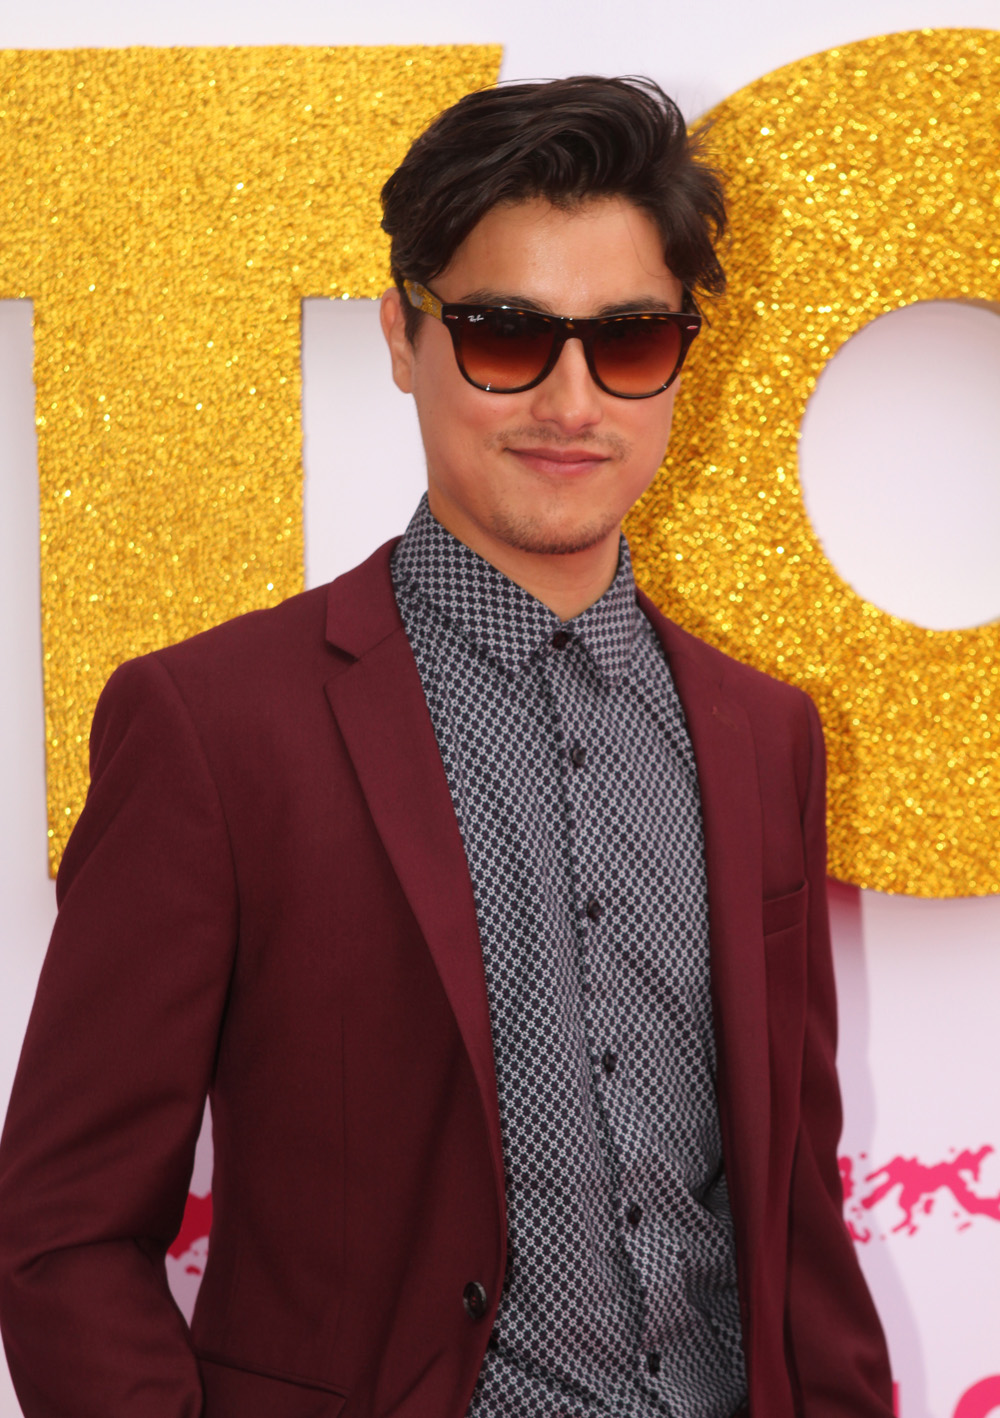 The 31-year old son of father (?) and mother(?) Remy Hii in 2018 photo. Remy Hii earned a  million dollar salary - leaving the net worth at 0.5 million in 2018